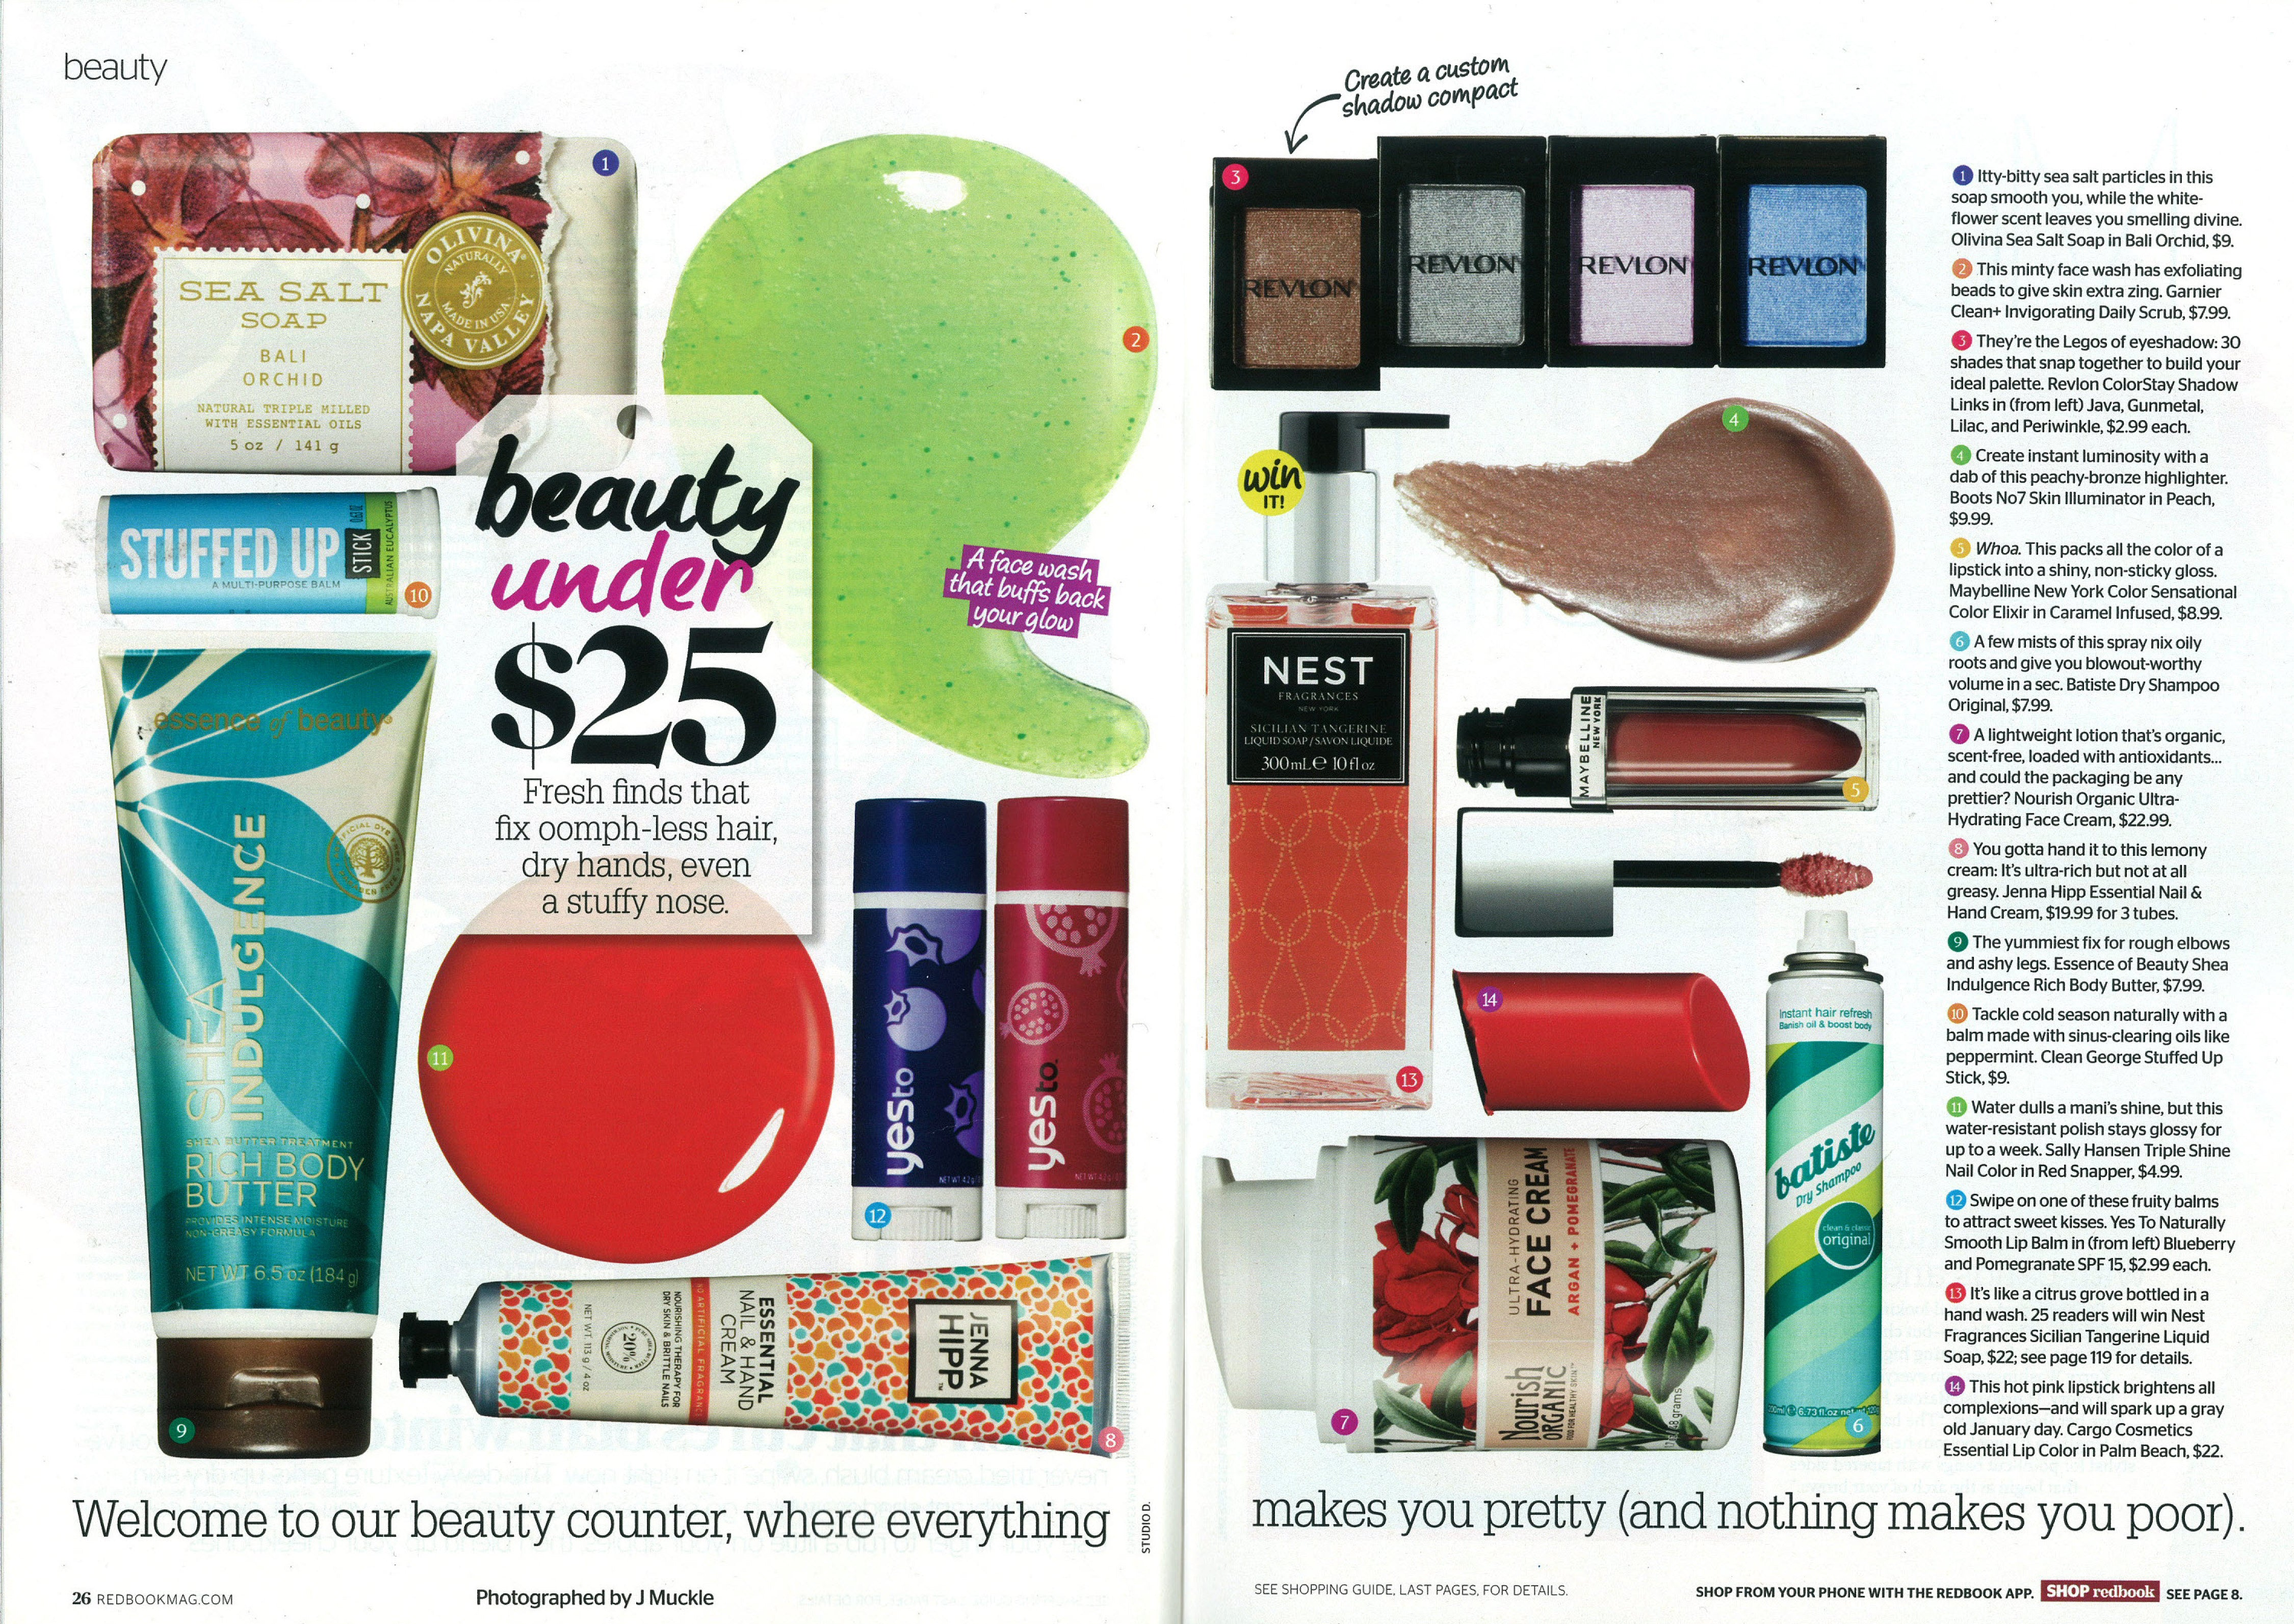 Beauty under $25 article